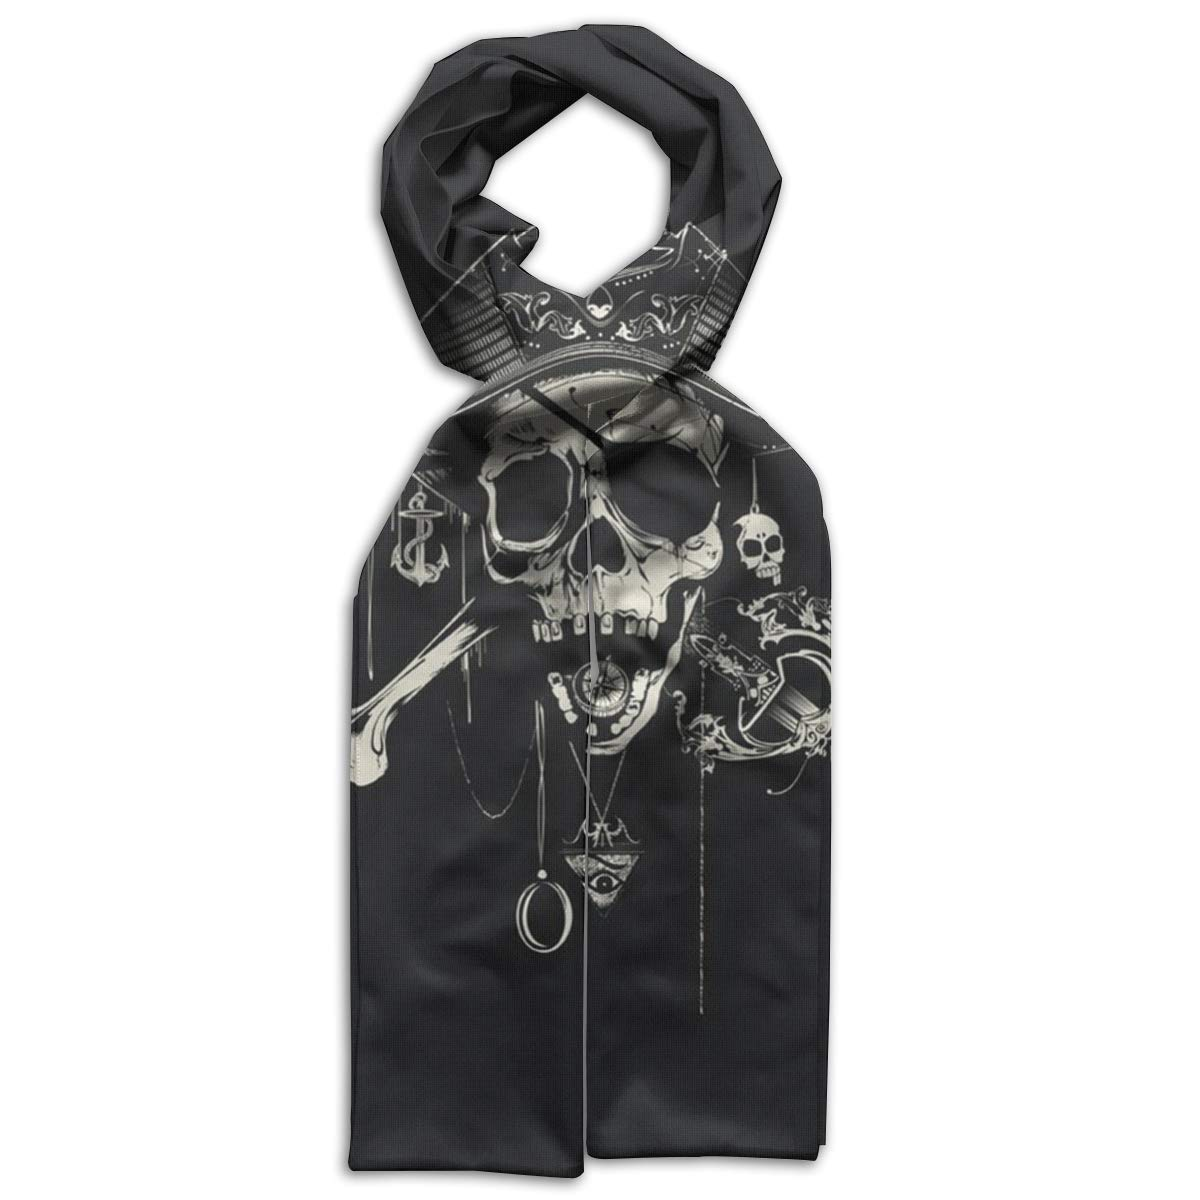 Pirate Skull Kids Printed Scarf Soft Winter Infinity Scarf Warmer Travel Scarf For Kids Perfect Birthday Gift